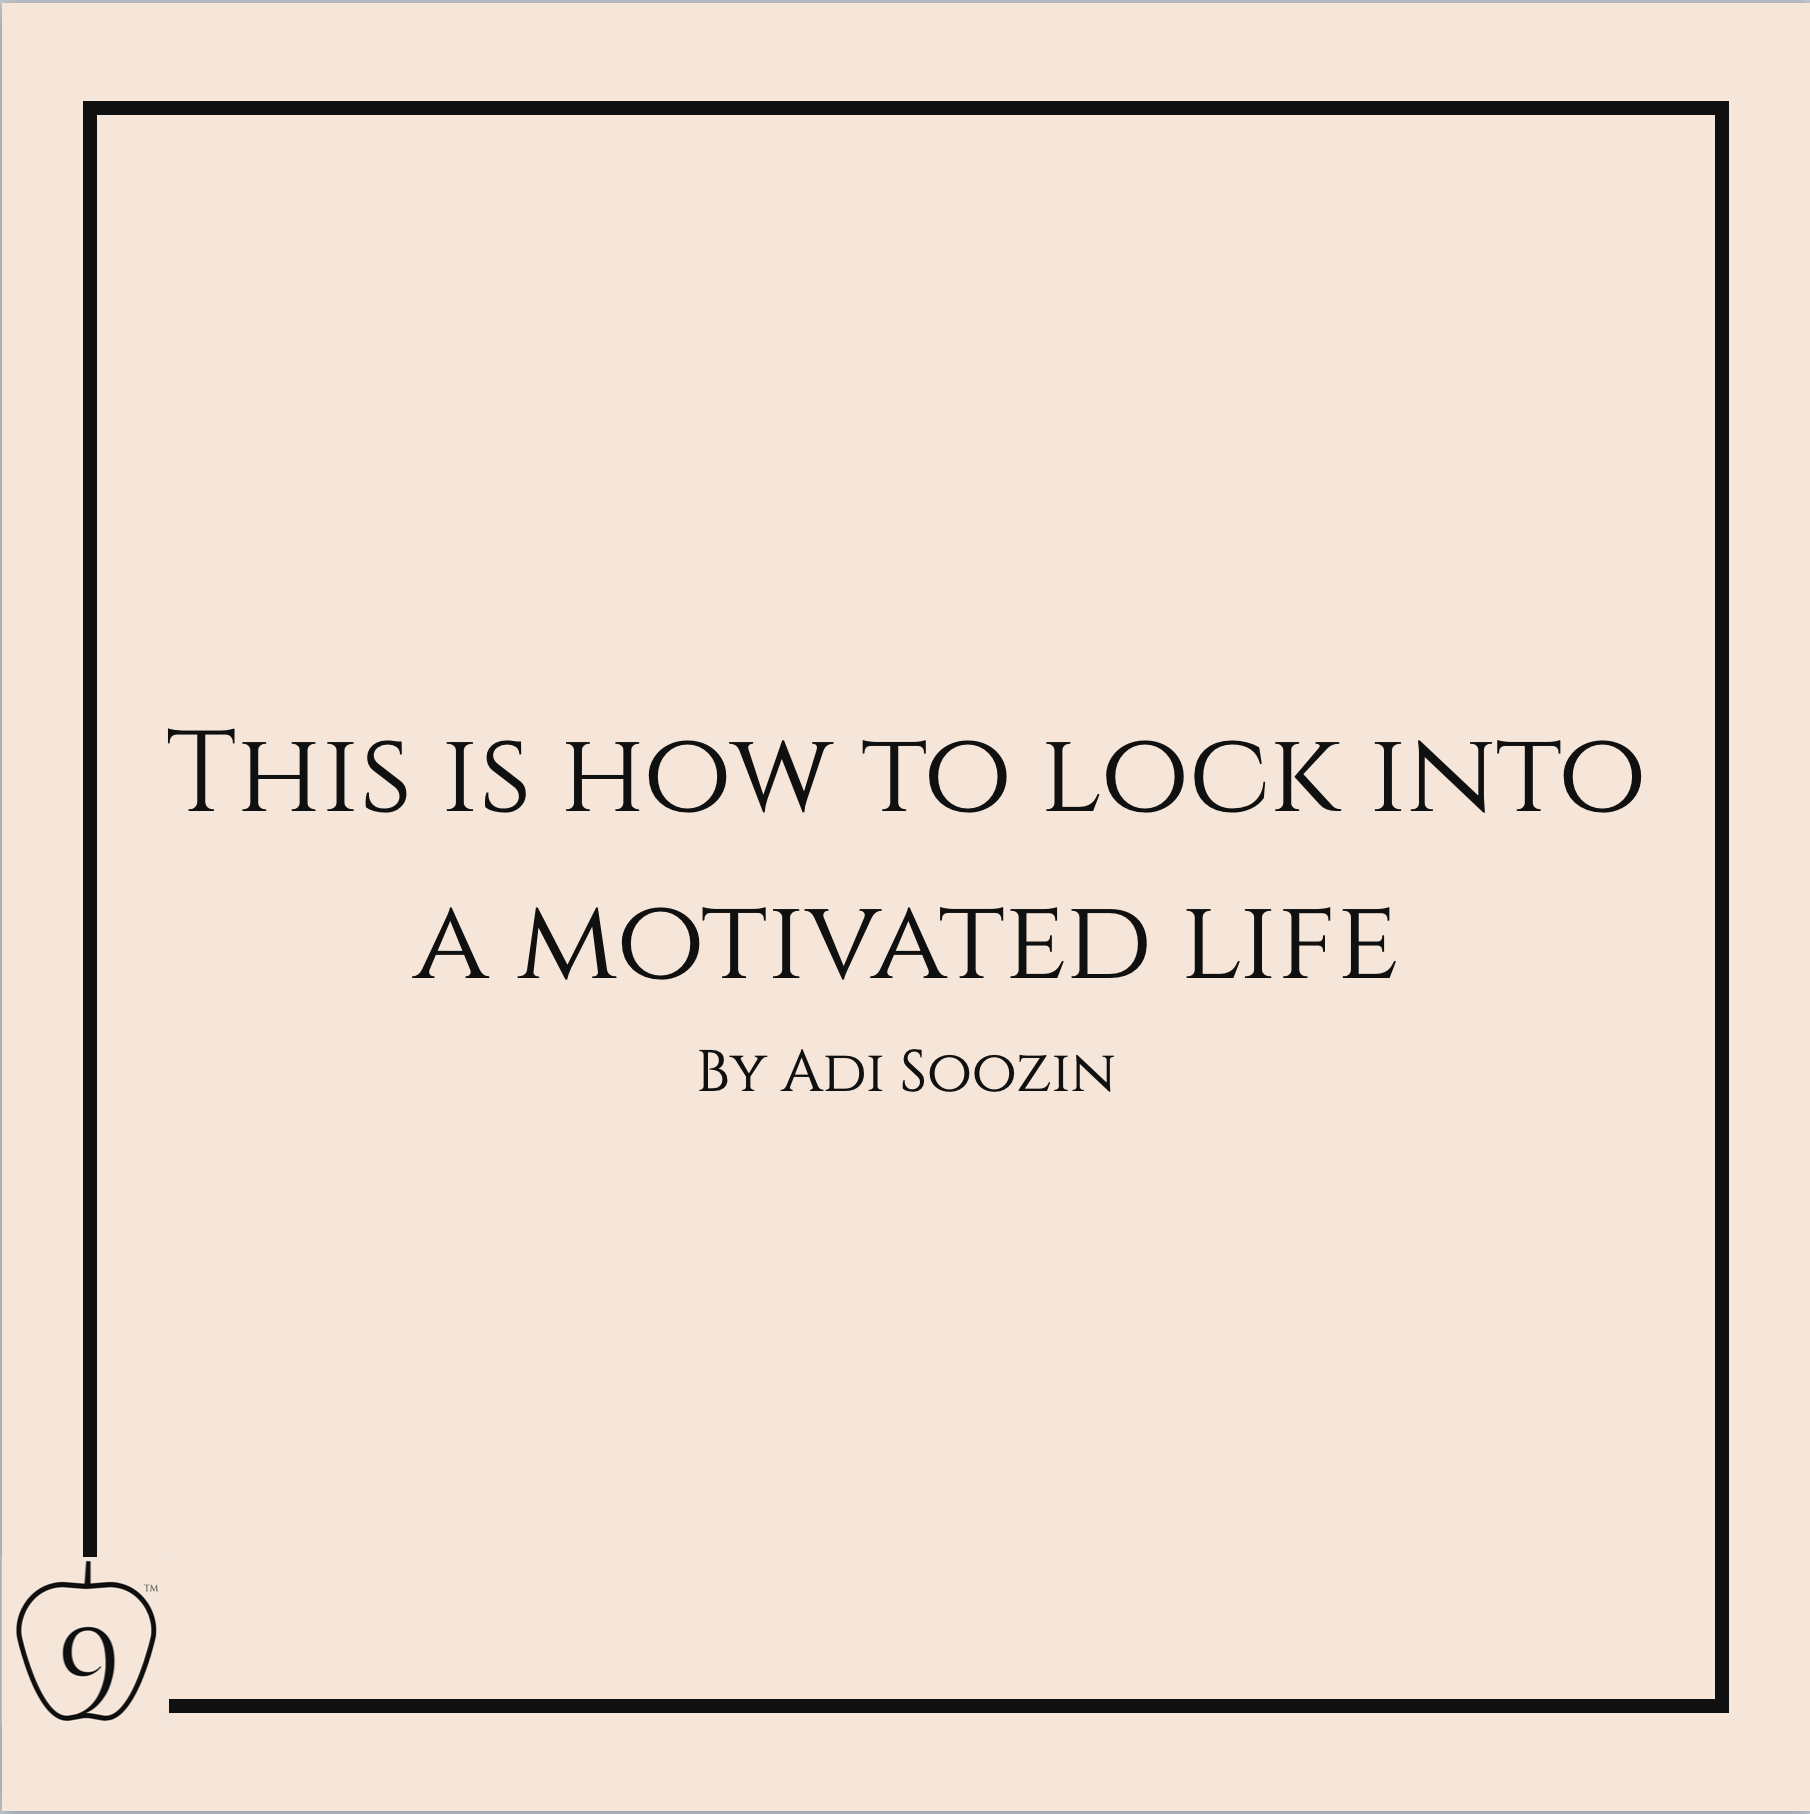 This Is How To Lock Into A Motivated Life